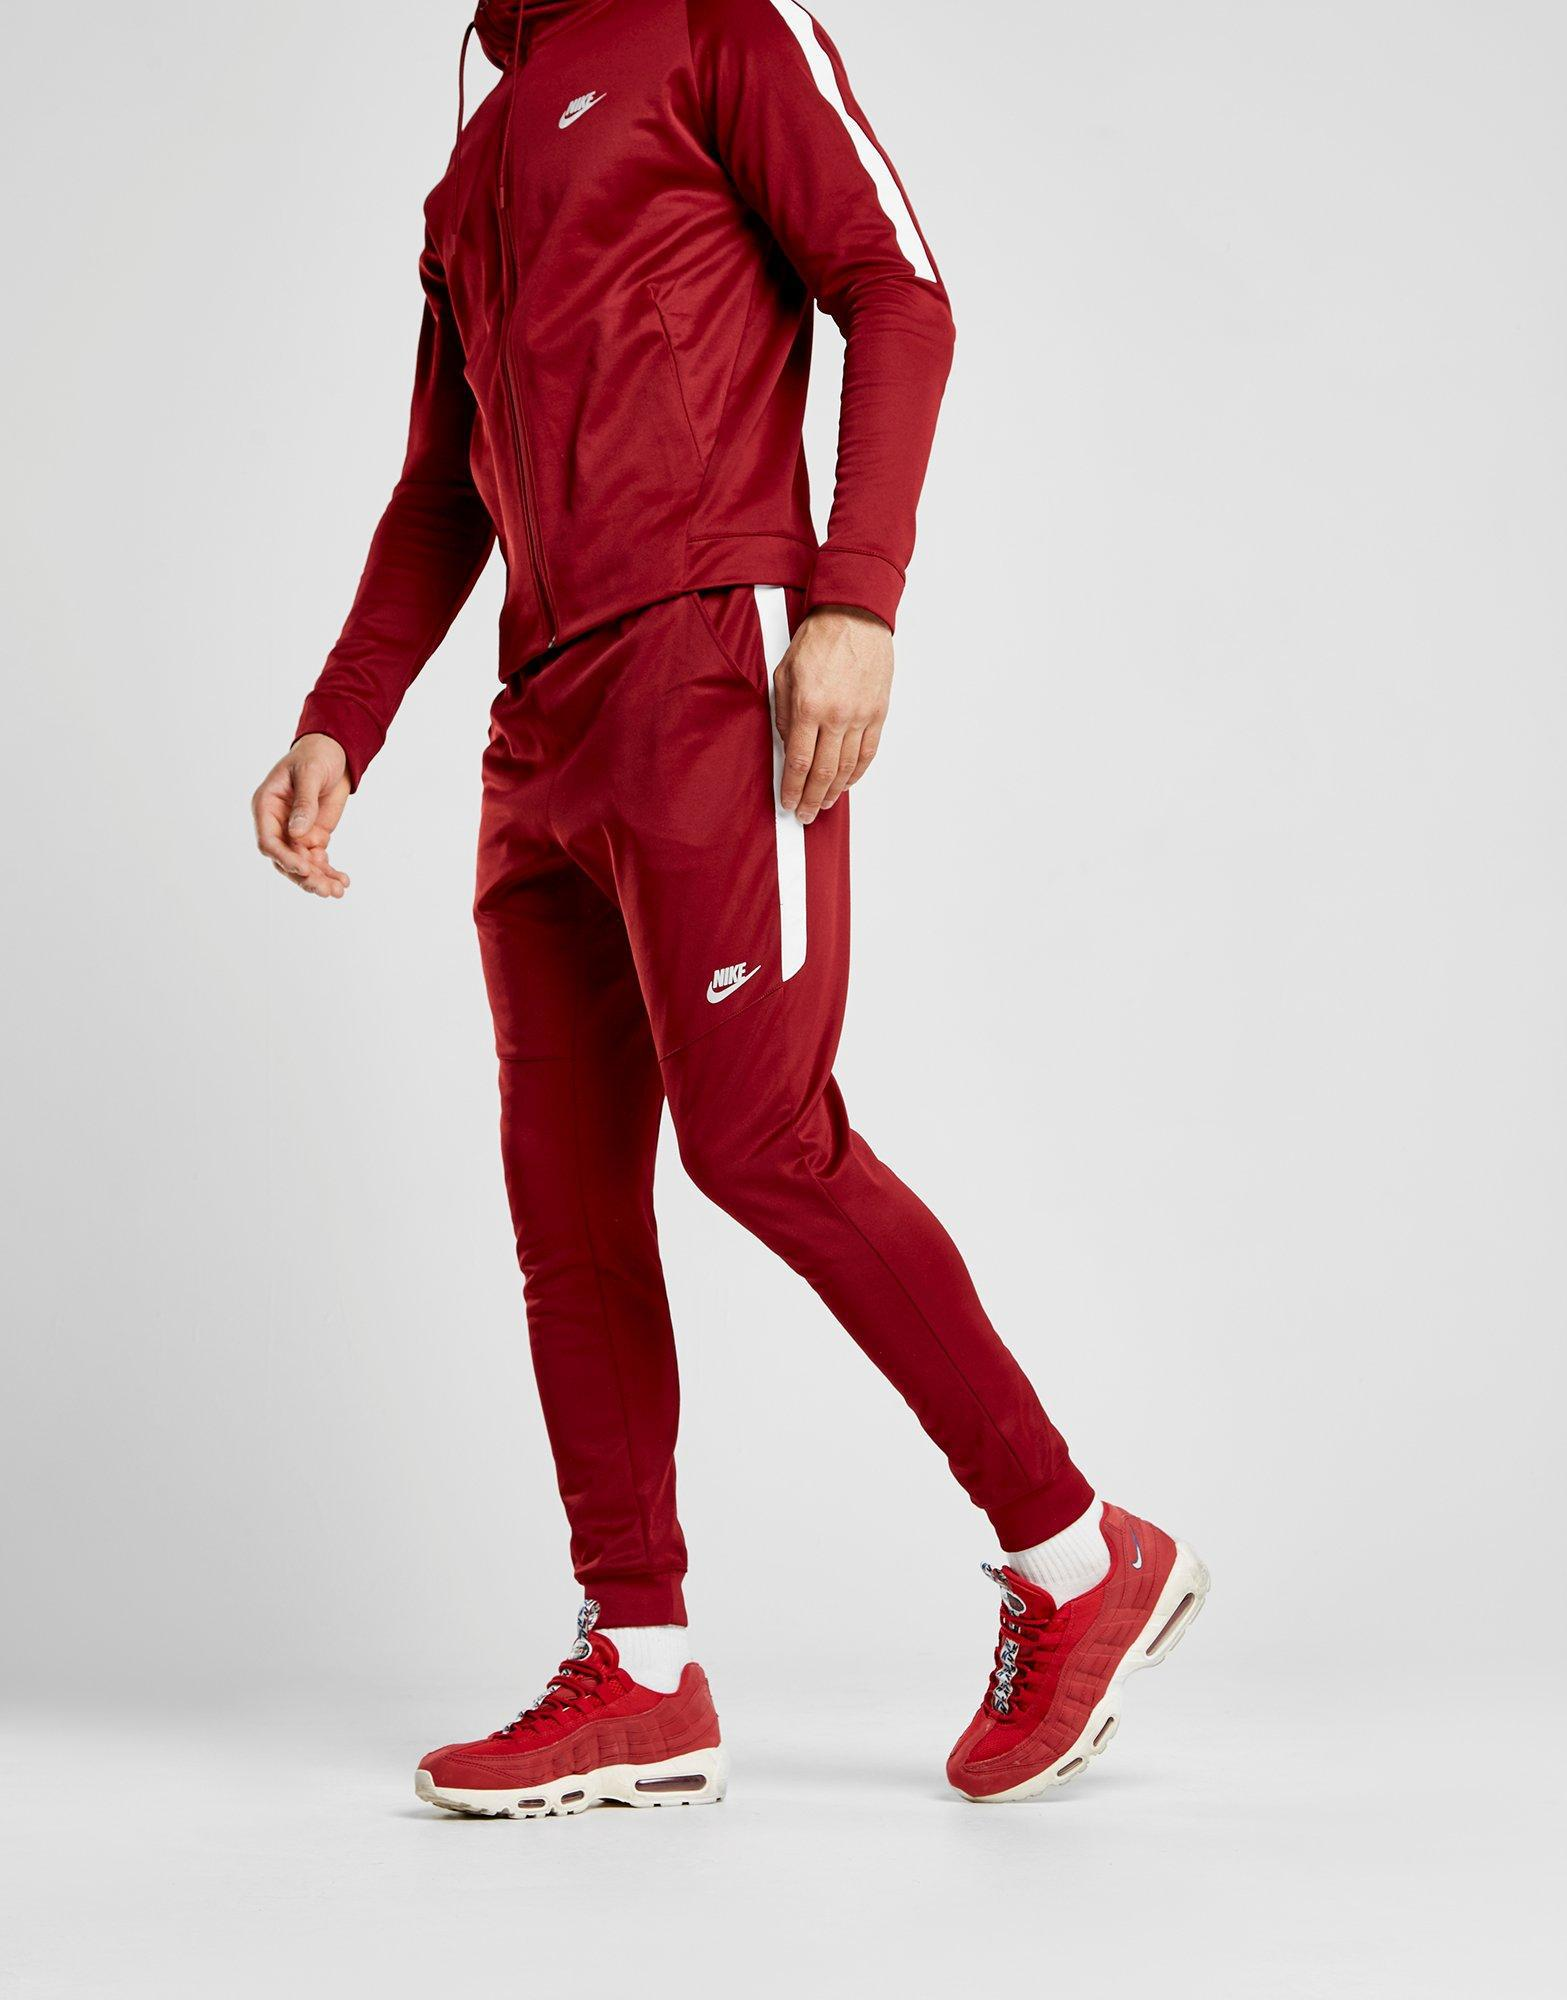 Lyst - Nike Tribute Dc Pants in Red for Men 670a13526